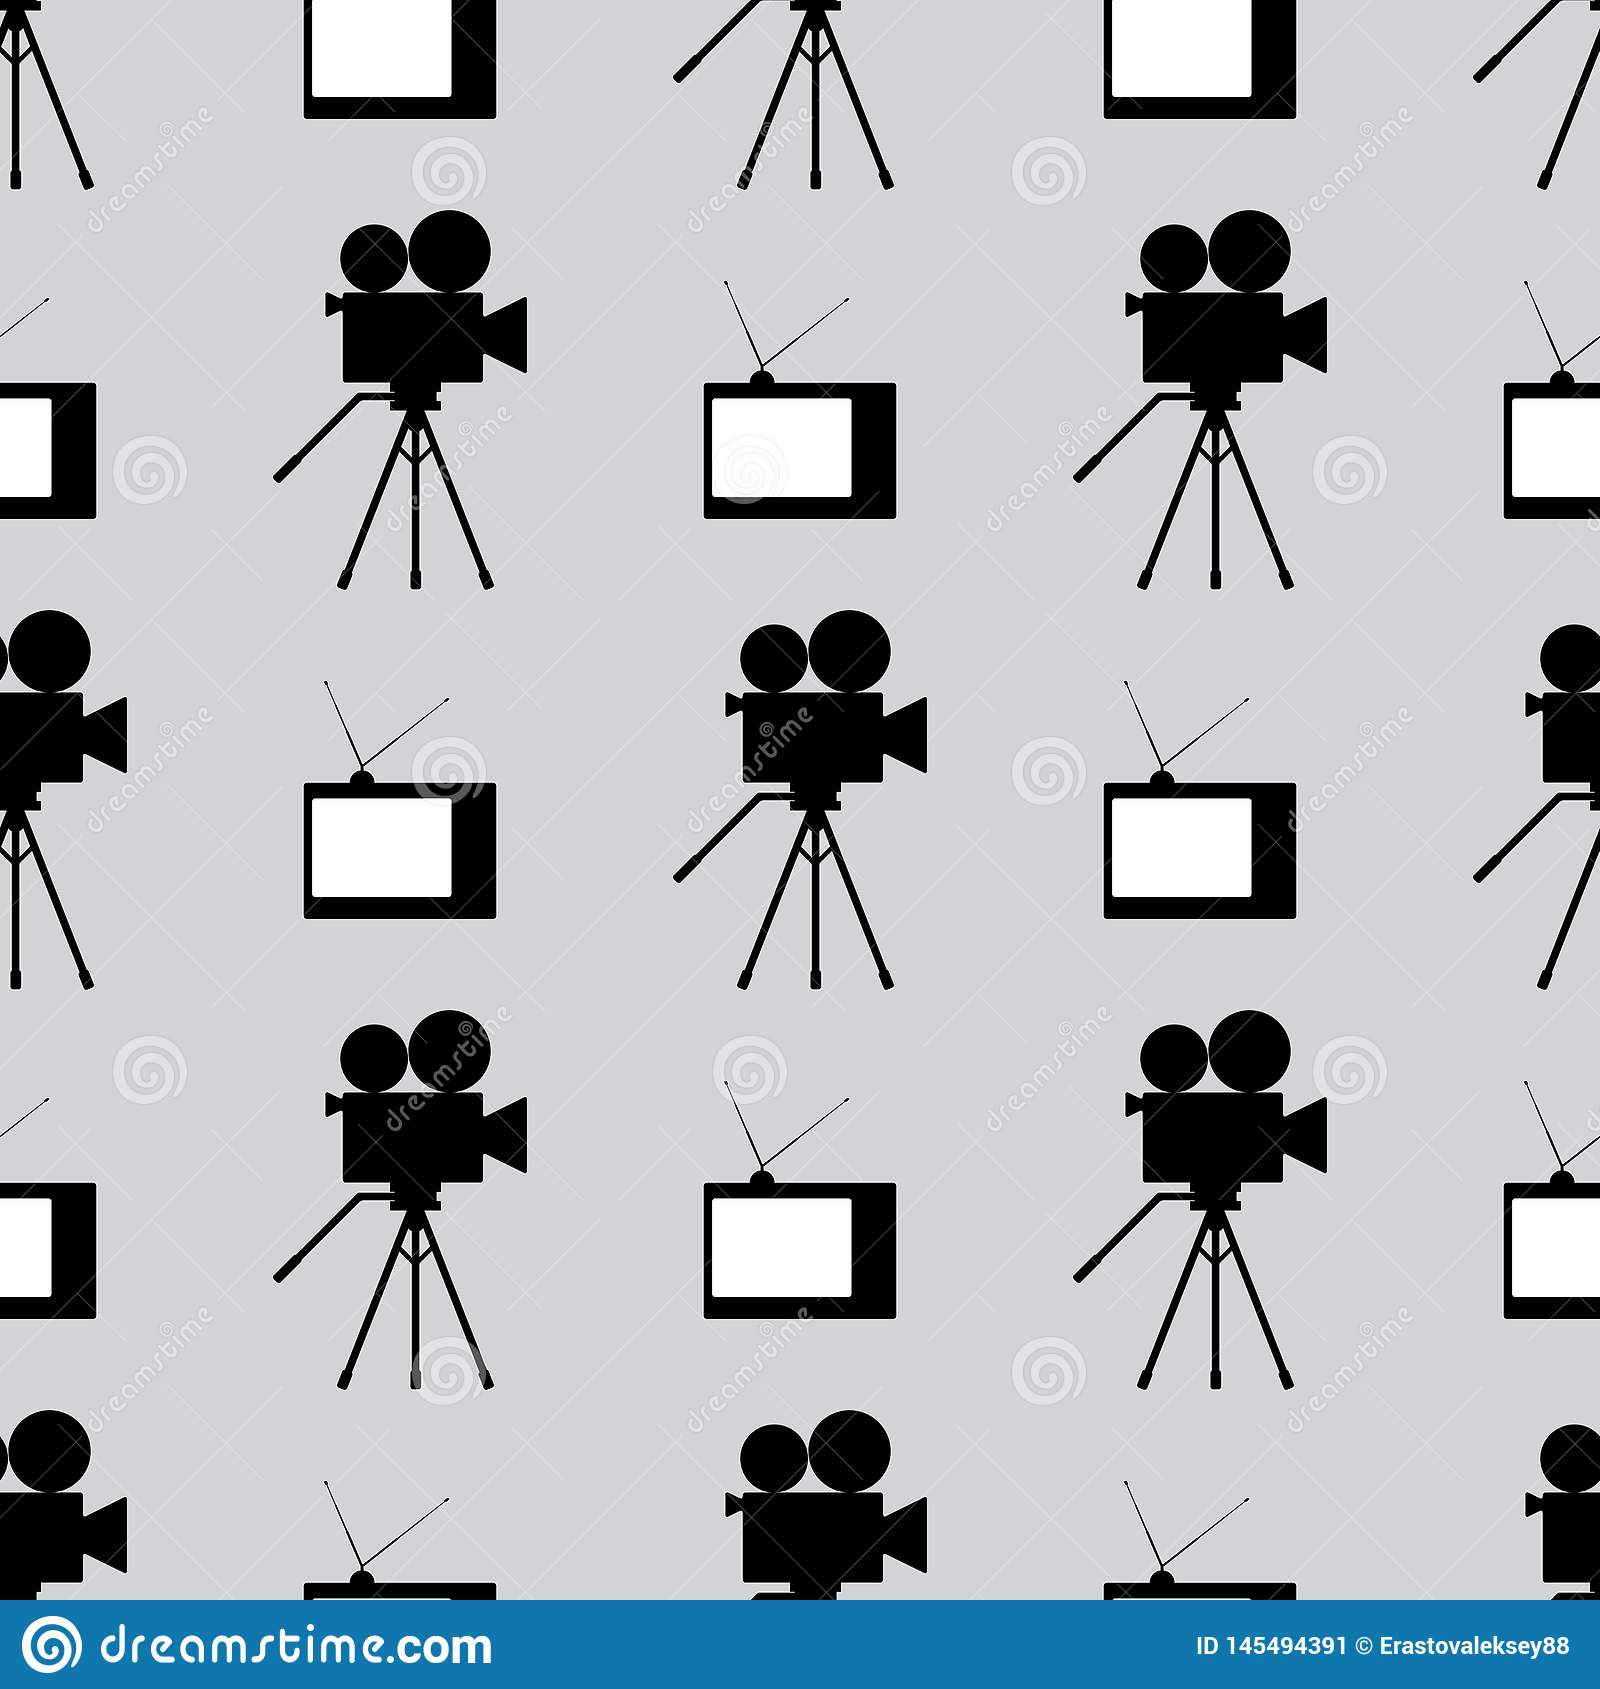 Retro film industry seamless pattern. Repetitive vintage TVs and camcorders. Seamless pattern. Black, white, gray.